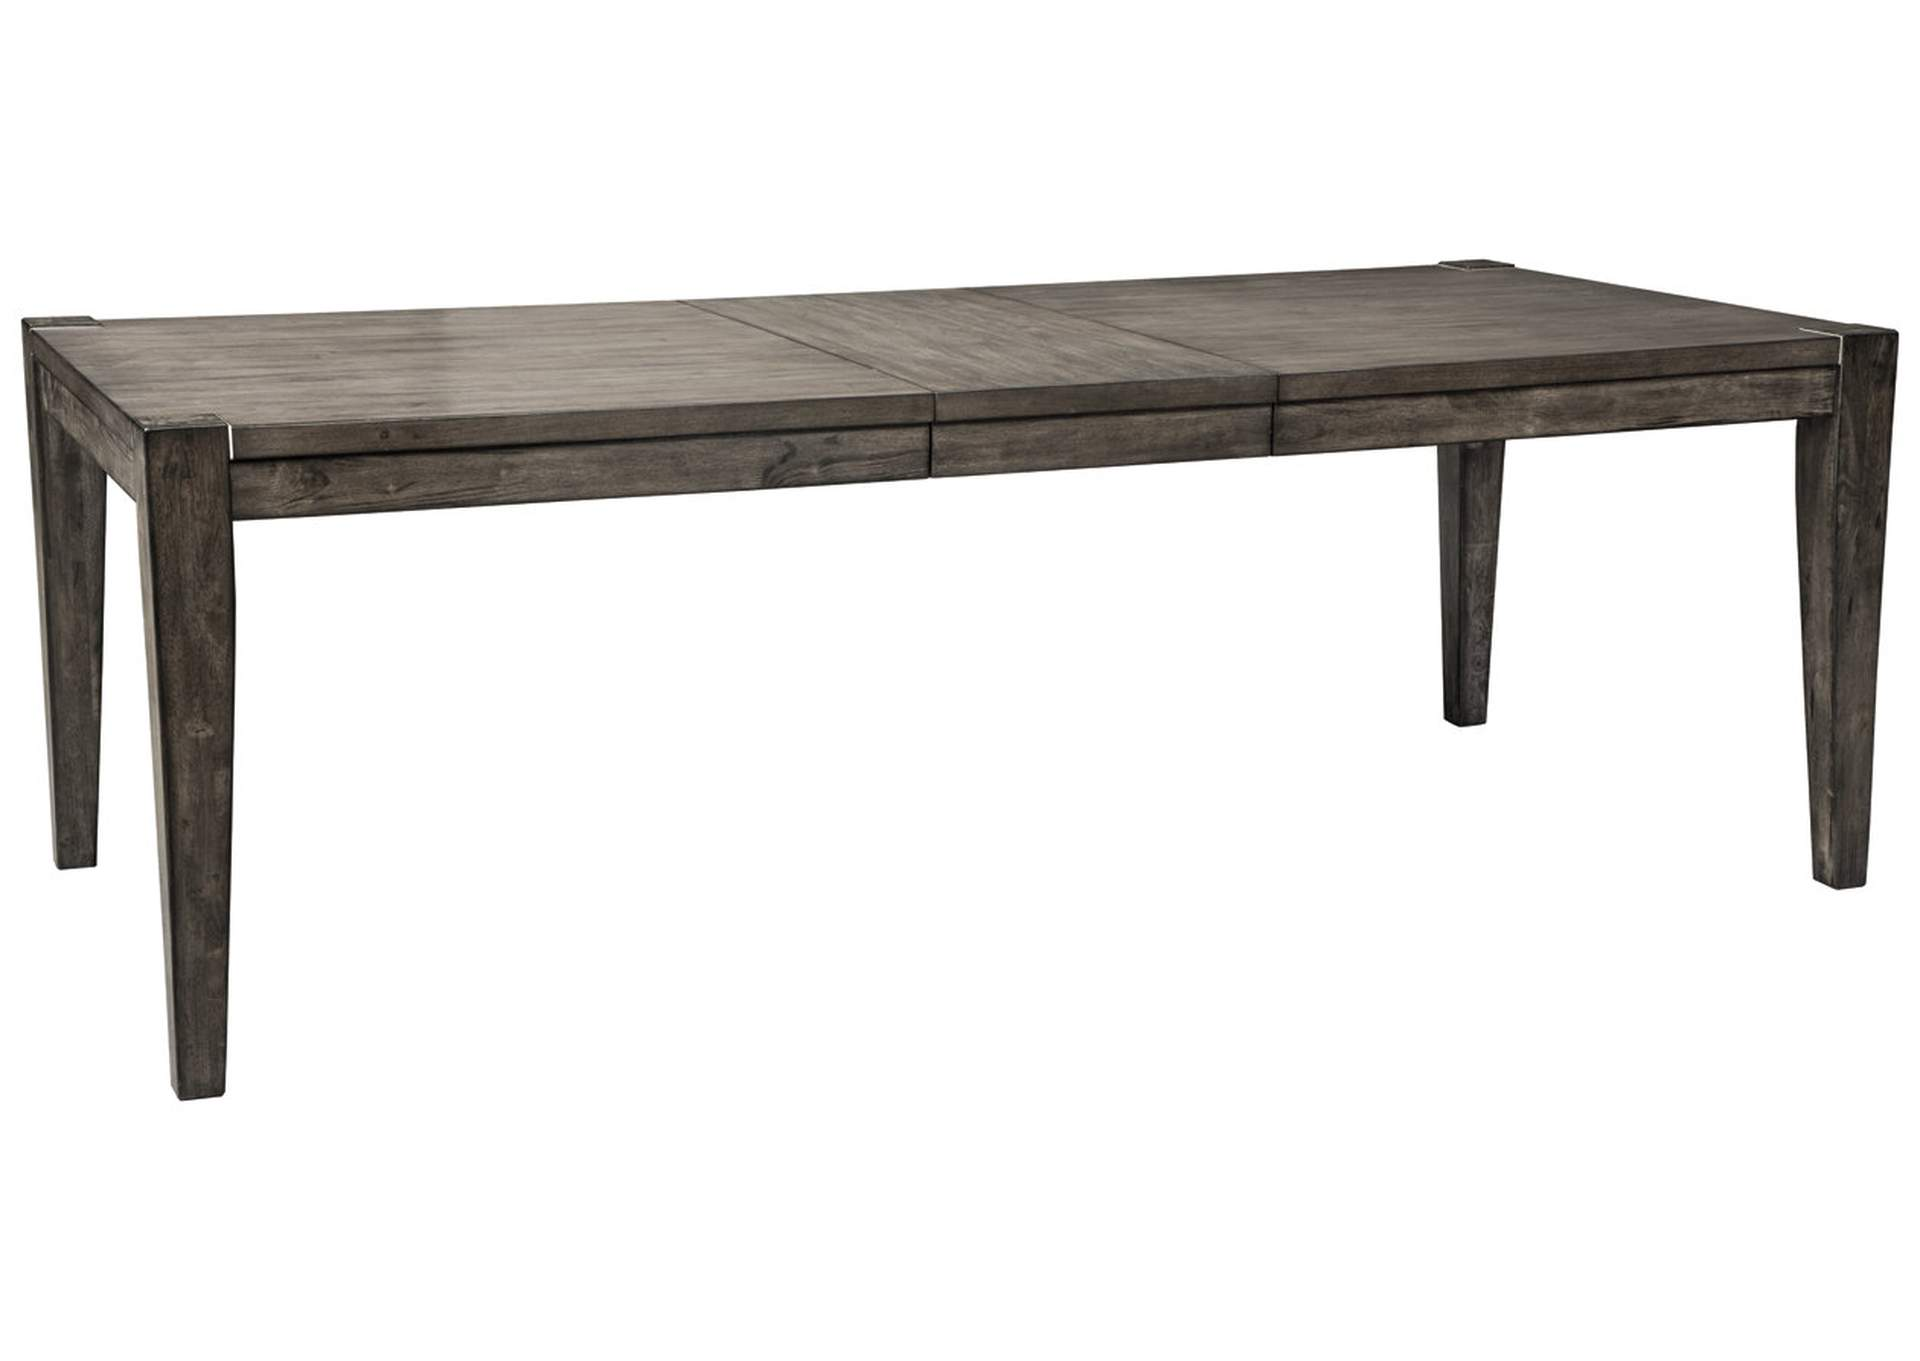 Chadoni Gray Rectangular Dining Room Extension Table,Signature Design By Ashley